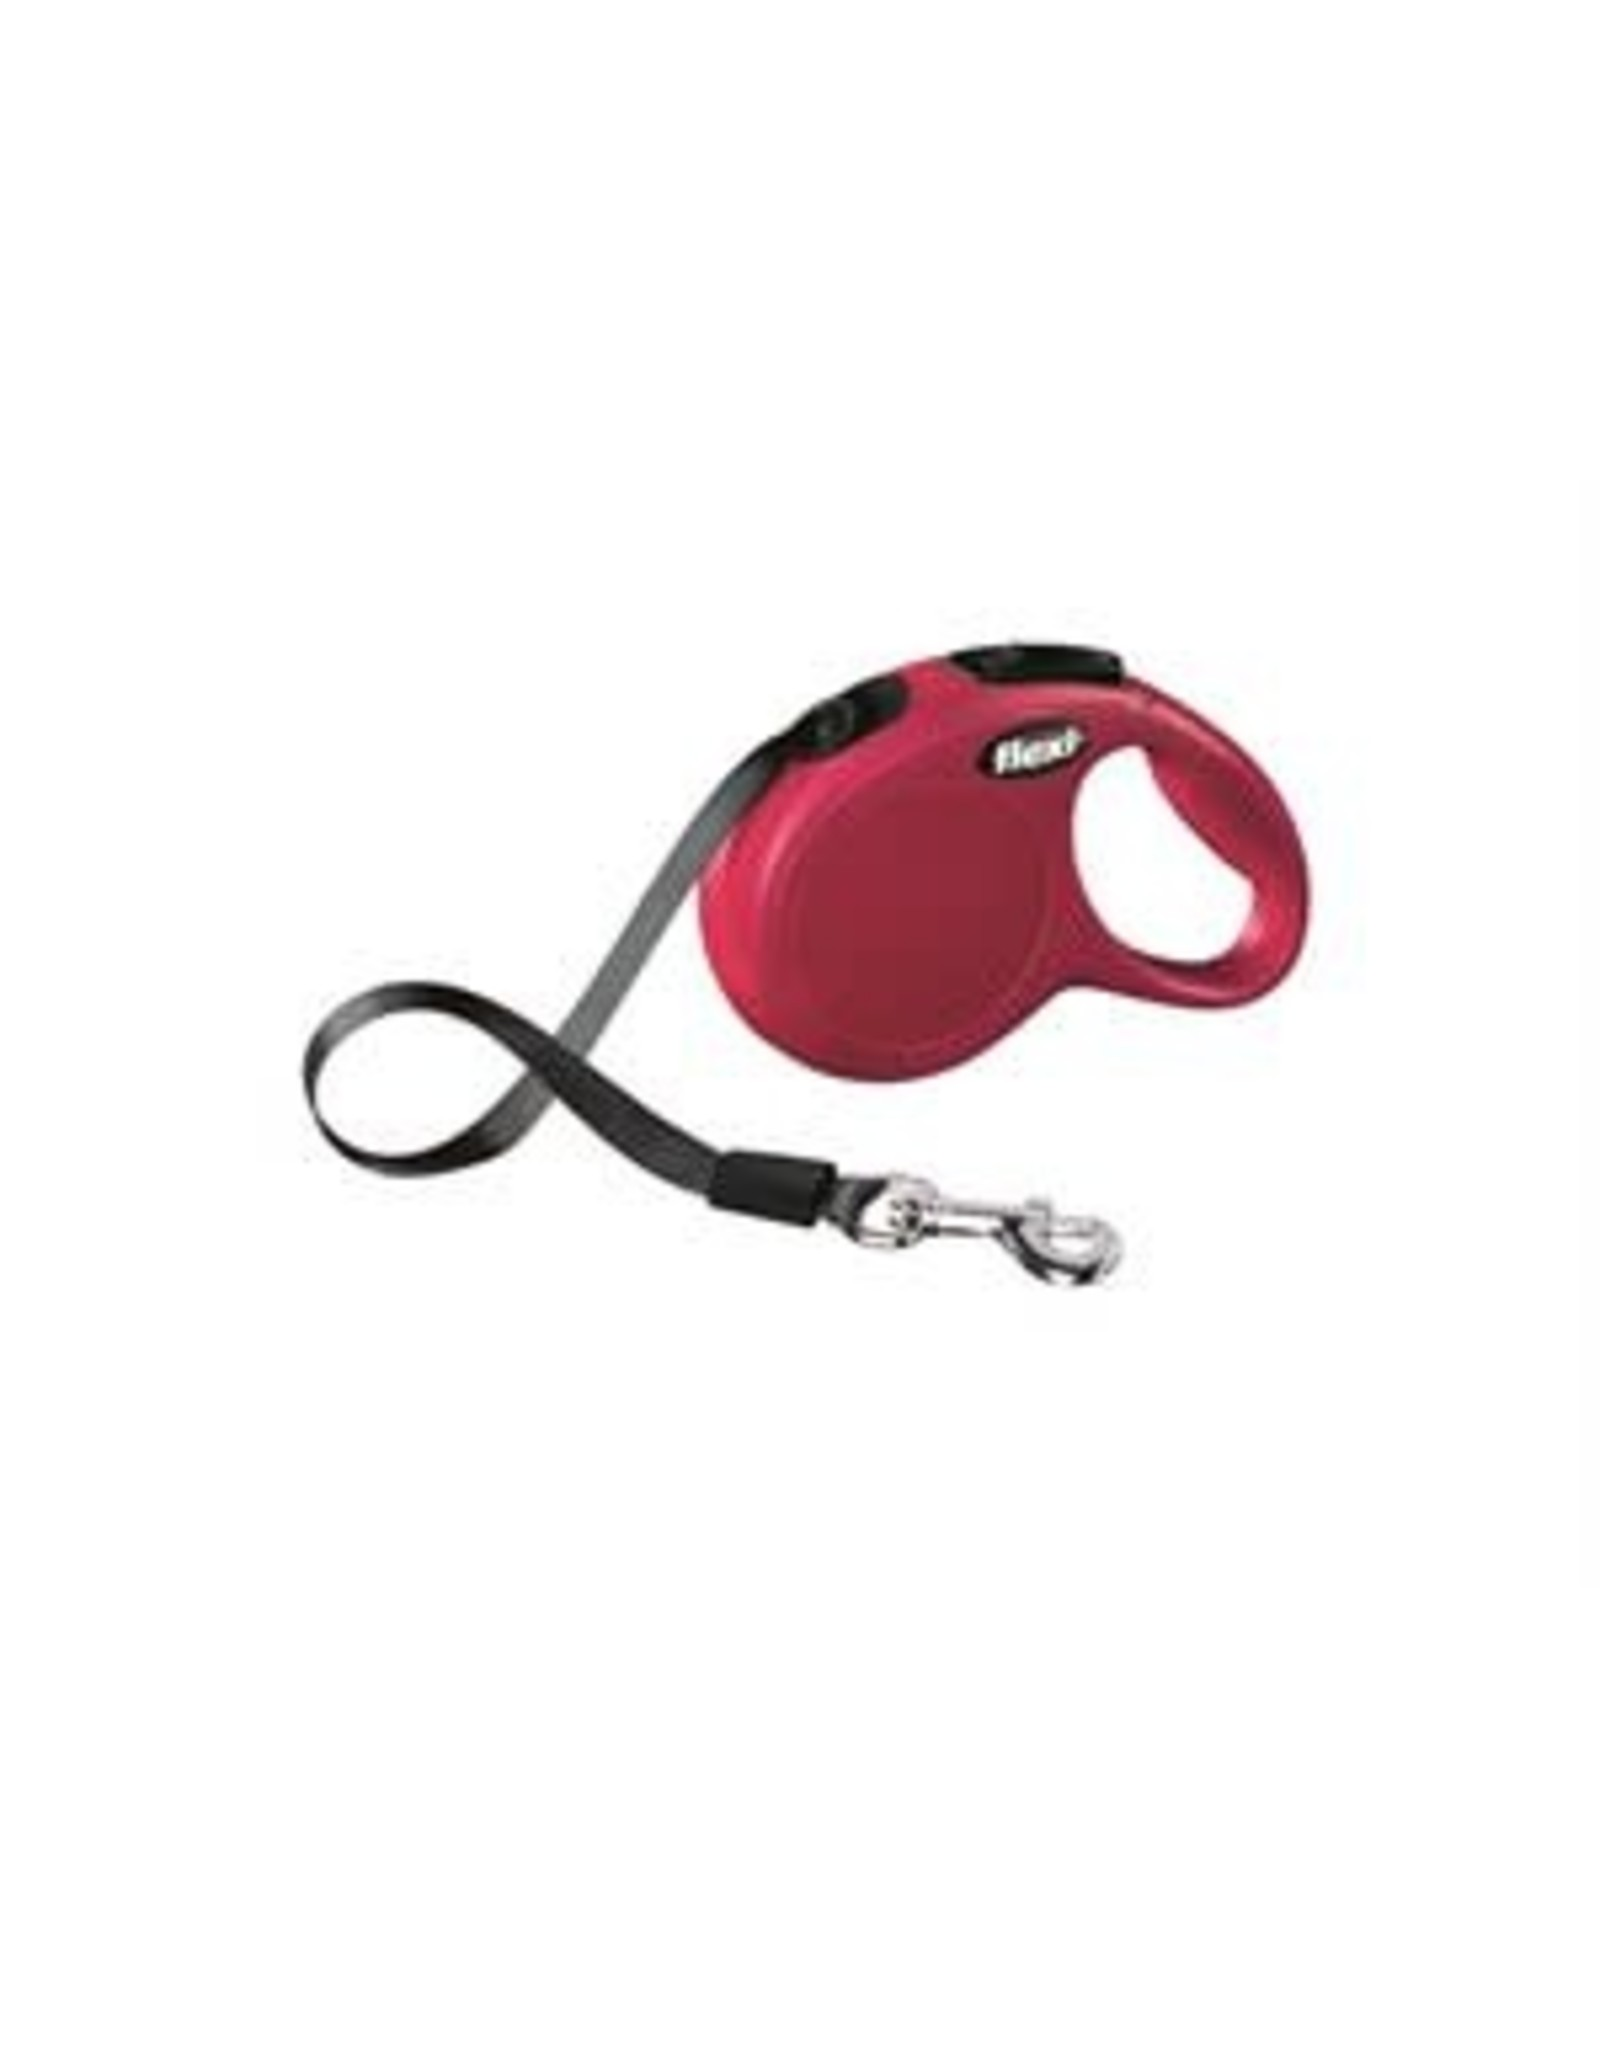 FLEXI FLEXI (new) Classic Tape - X-Small 3meter Red